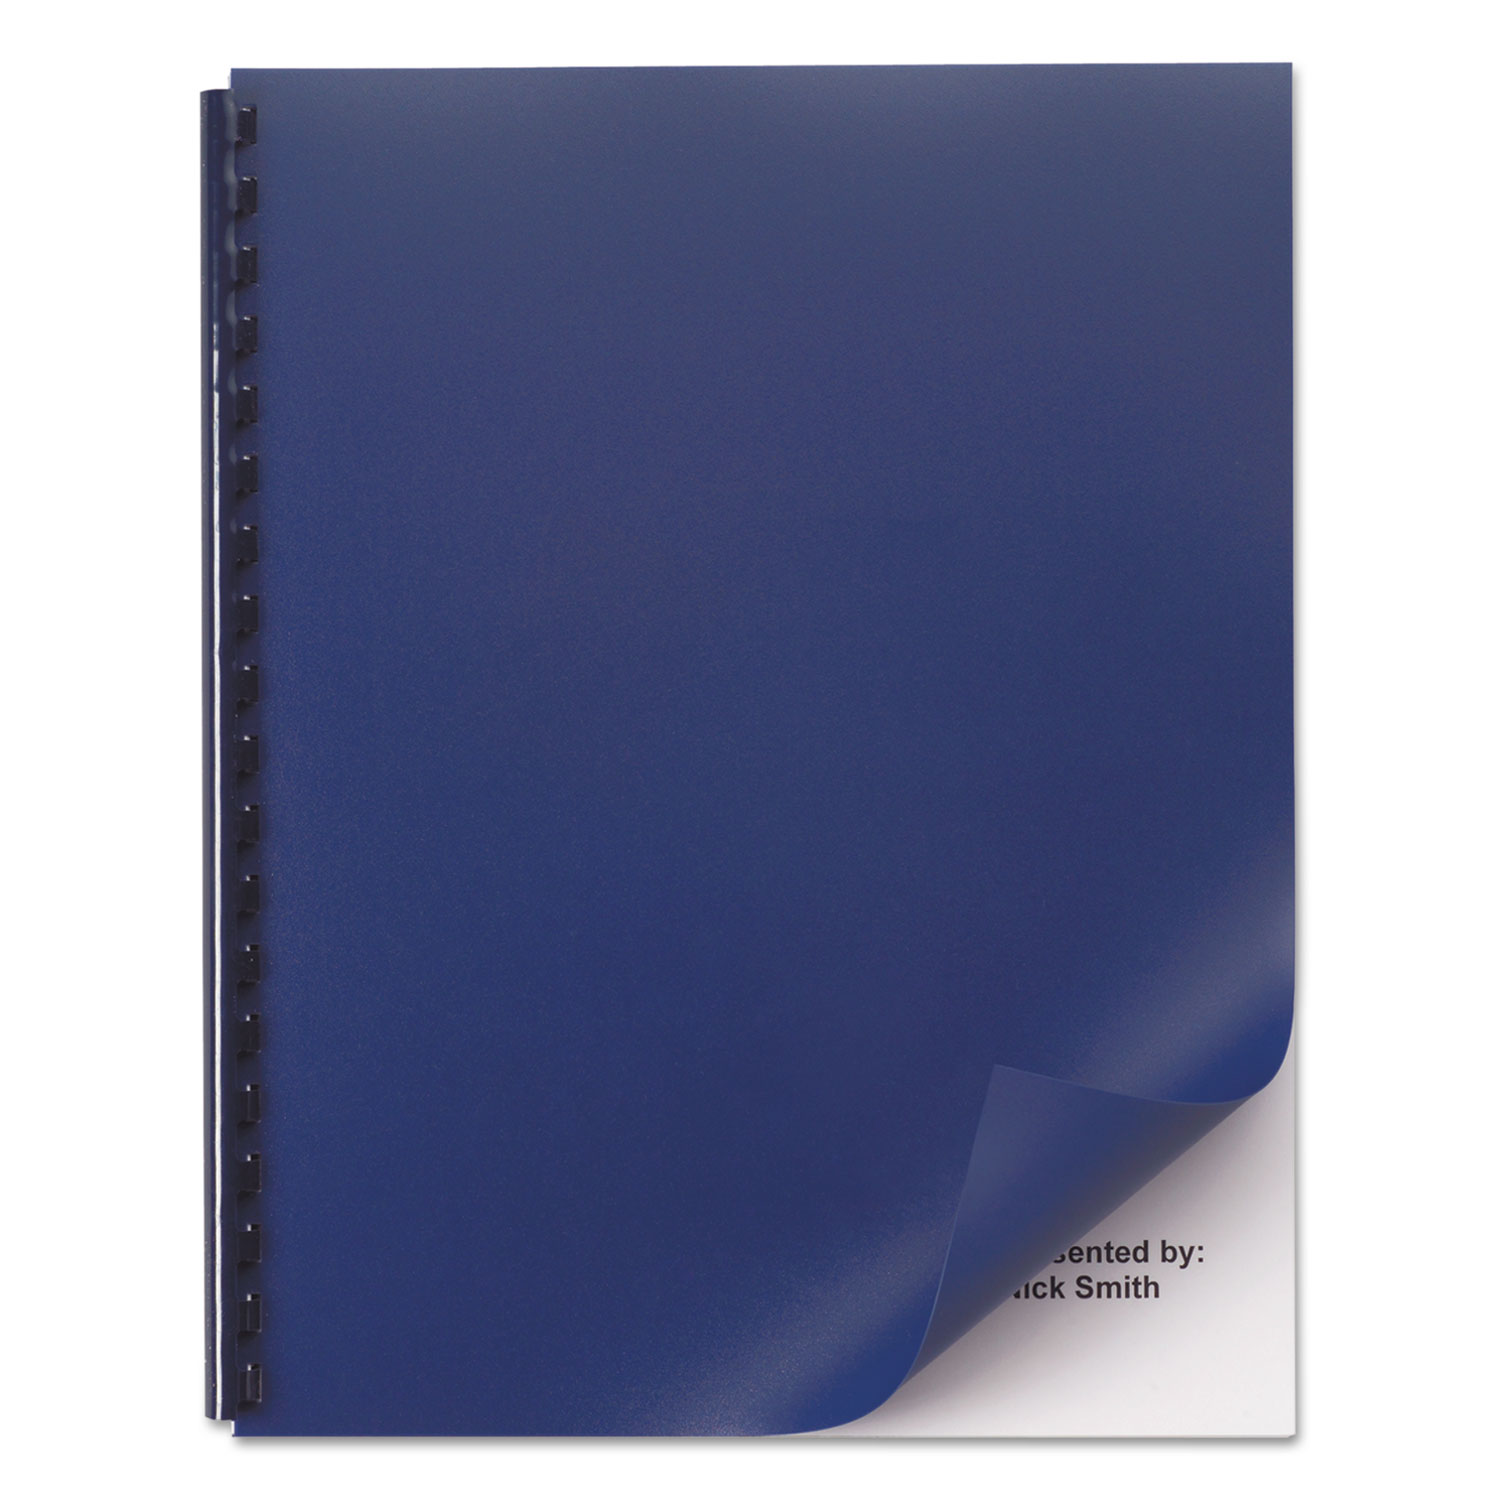 Opaque Plastic Presentation Binding System Covers, 11 x 8 1/2, Navy, 50/Pack